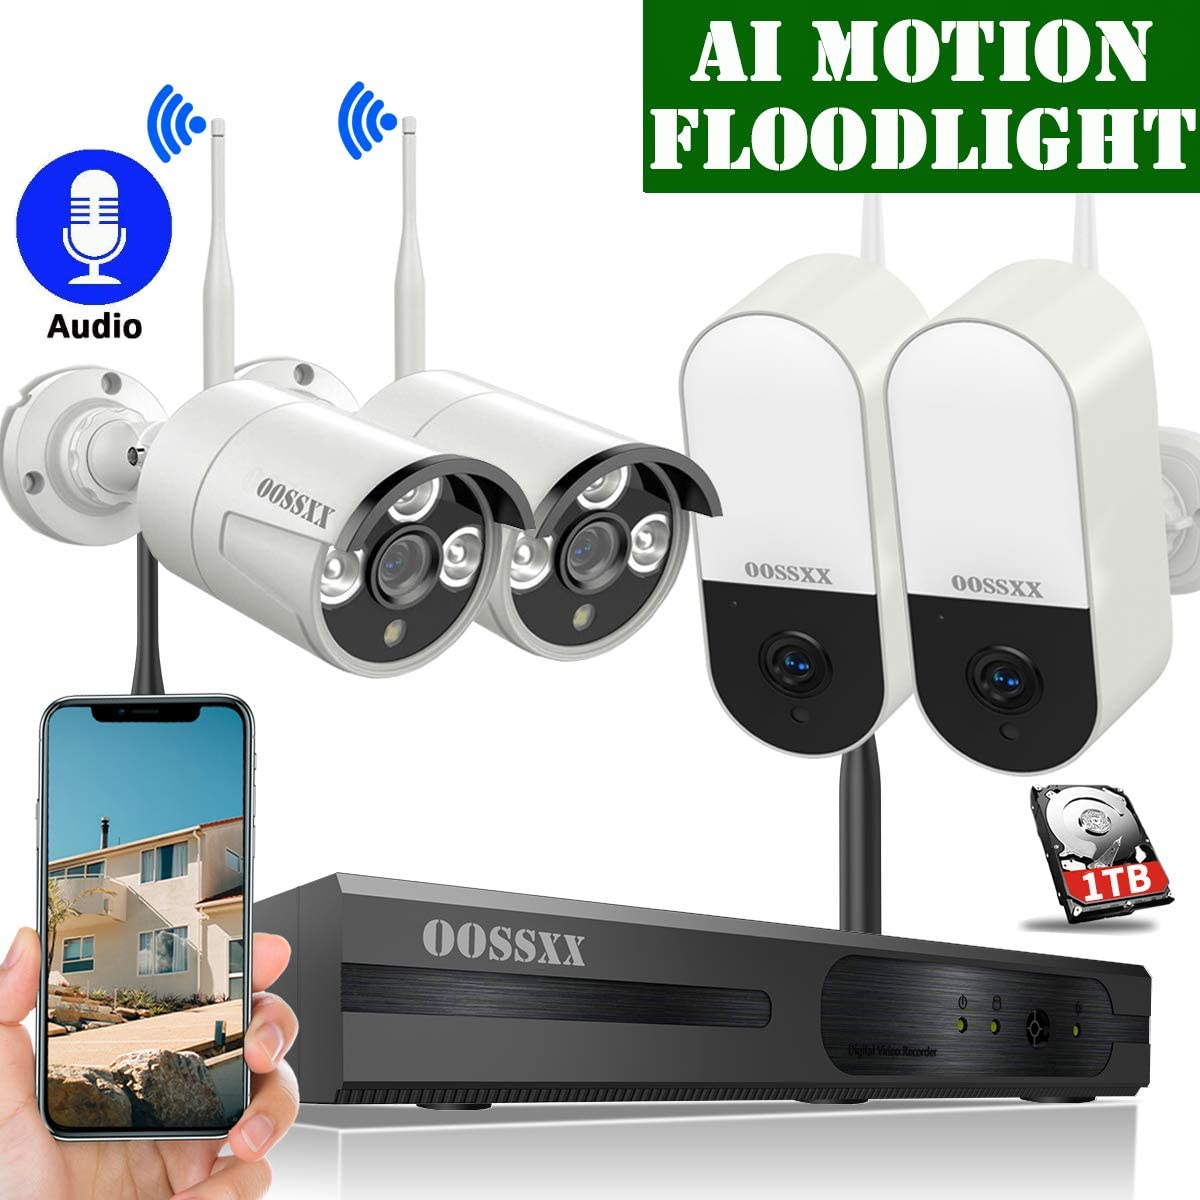 Wireless Video Security Surveillance Camera System with Hard Drive,OOSSXX 8CH HD 1080P Home NVR Kit,2Pcs Wireless Security Floodlight Cameras and 2Pcs Wireless Outdoor IP Cameras with One-Way Audio